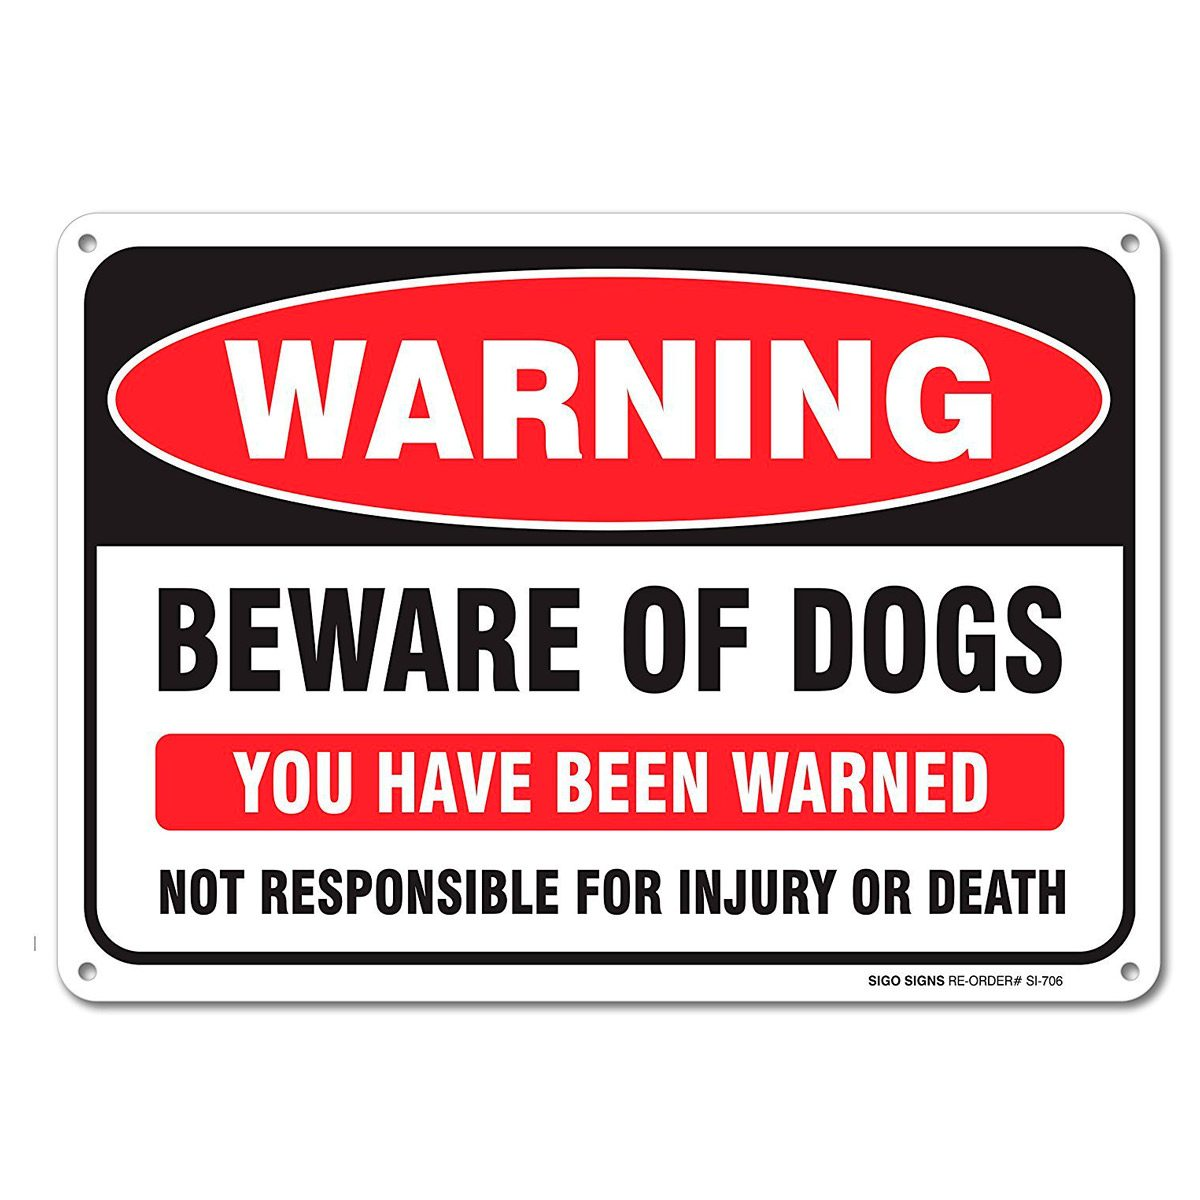 Closed Circuit Home /& Business WINDOW Stickers 4 Security Alarm WARNING DECALS